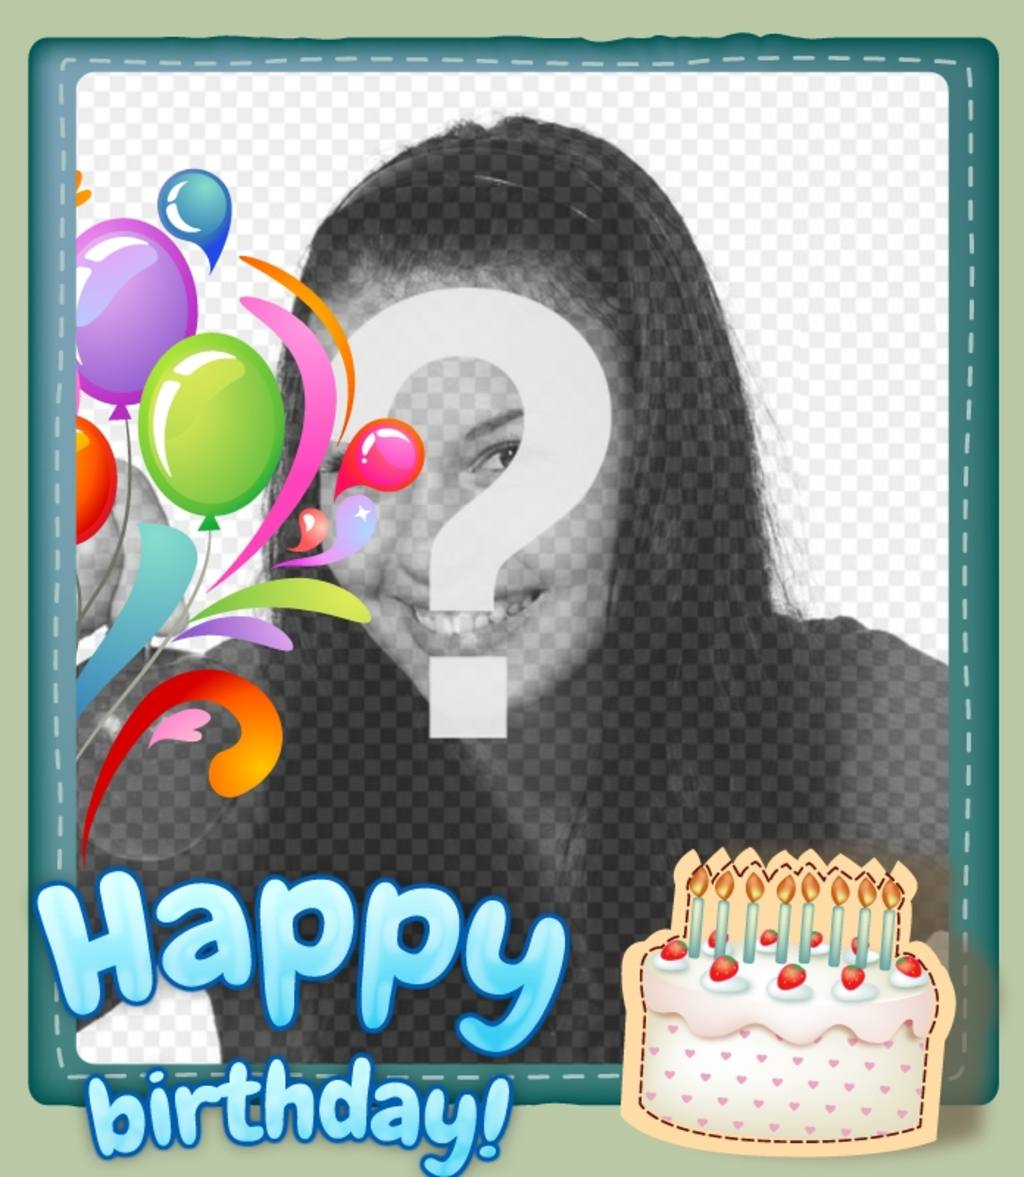 Free Birthday Card Customizable With Photo